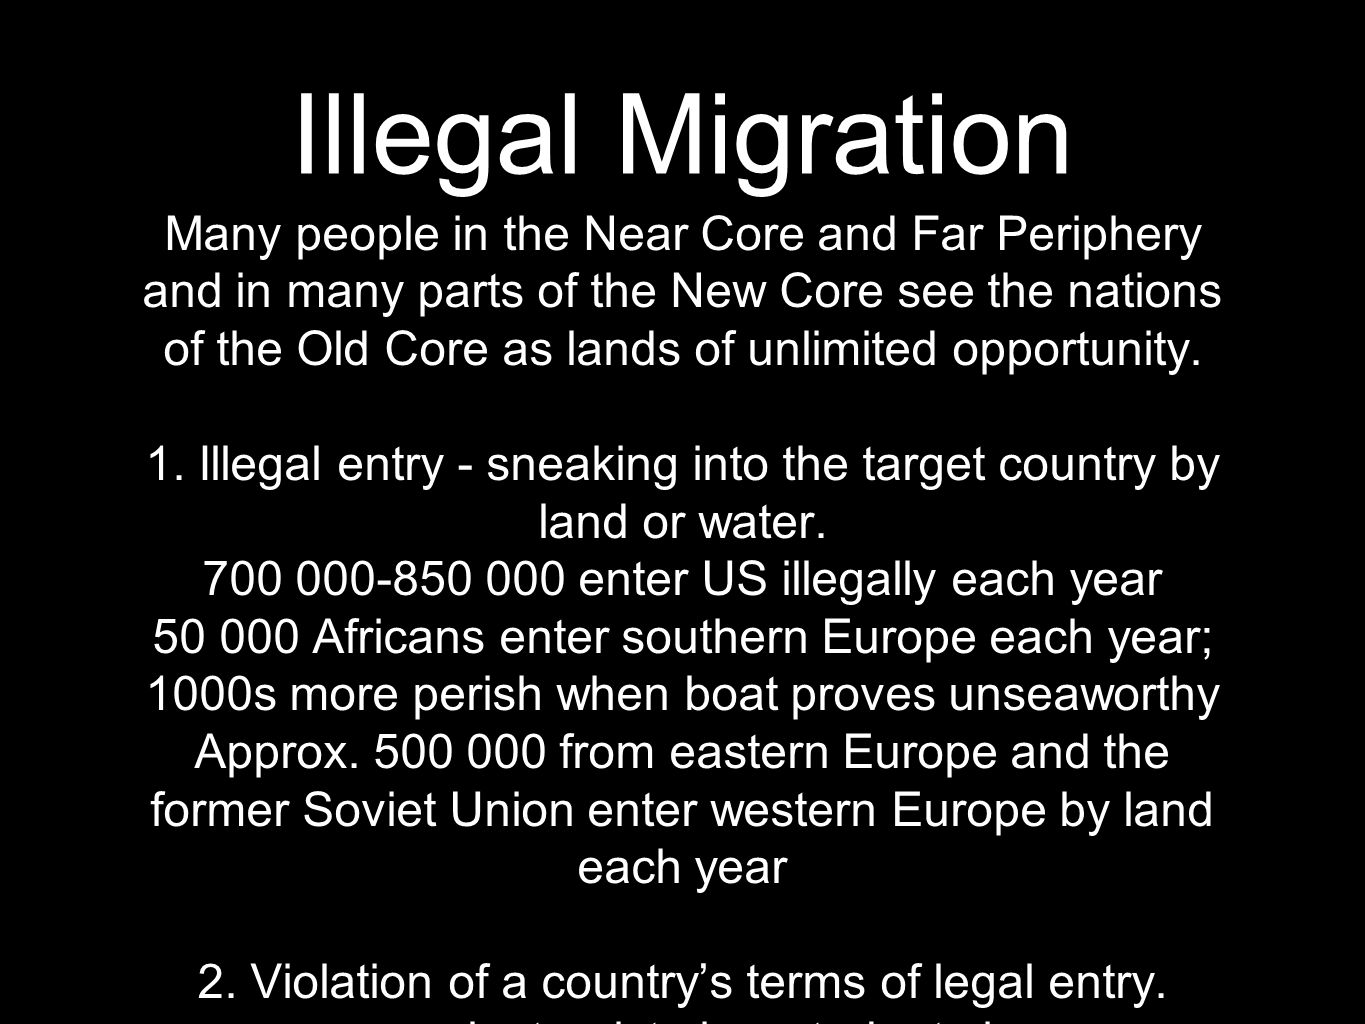 Illegal Migration Many people in the Near Core and Far Periphery and in many parts of the New Core see the nations of the Old Core as lands of unlimited opportunity.